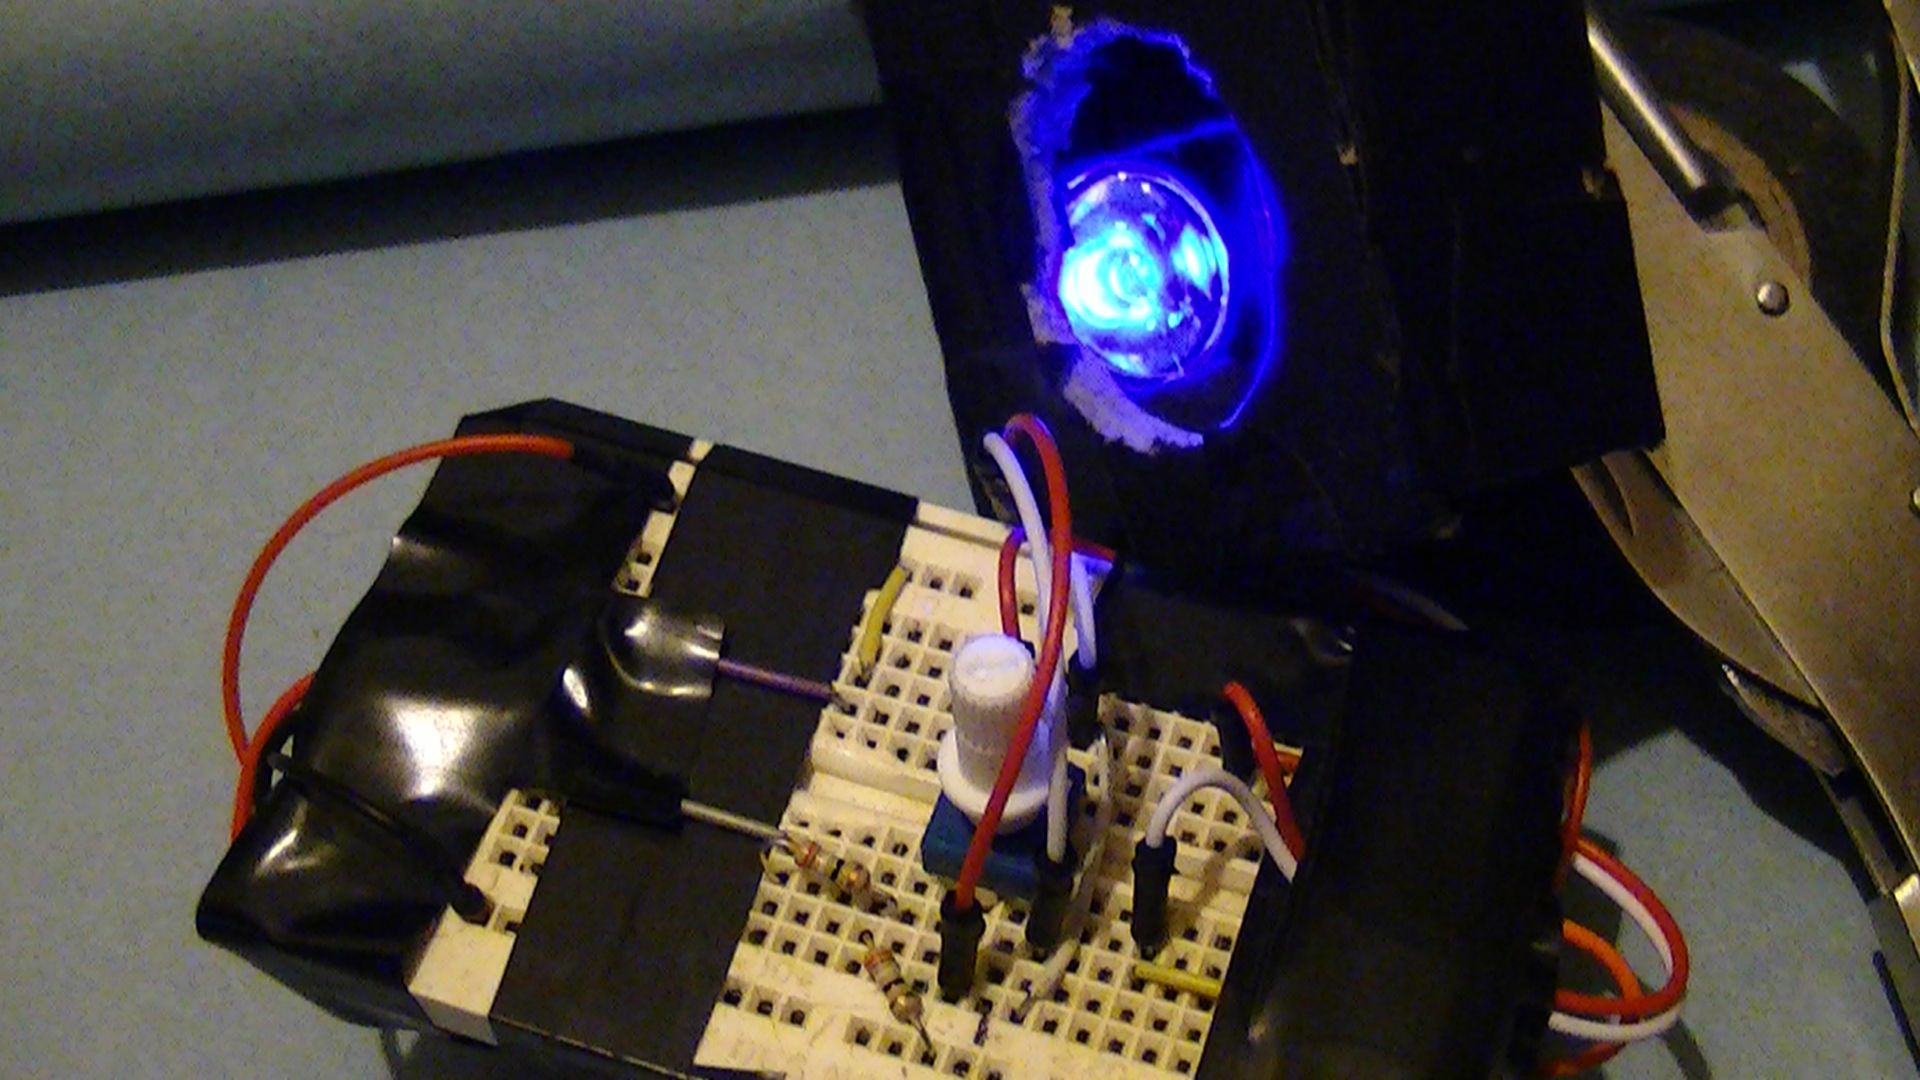 Public Lab Prolight 1 Watt Uv Led Almost Ready For Testing Driver Using A Joule Thief Circuit Homemade